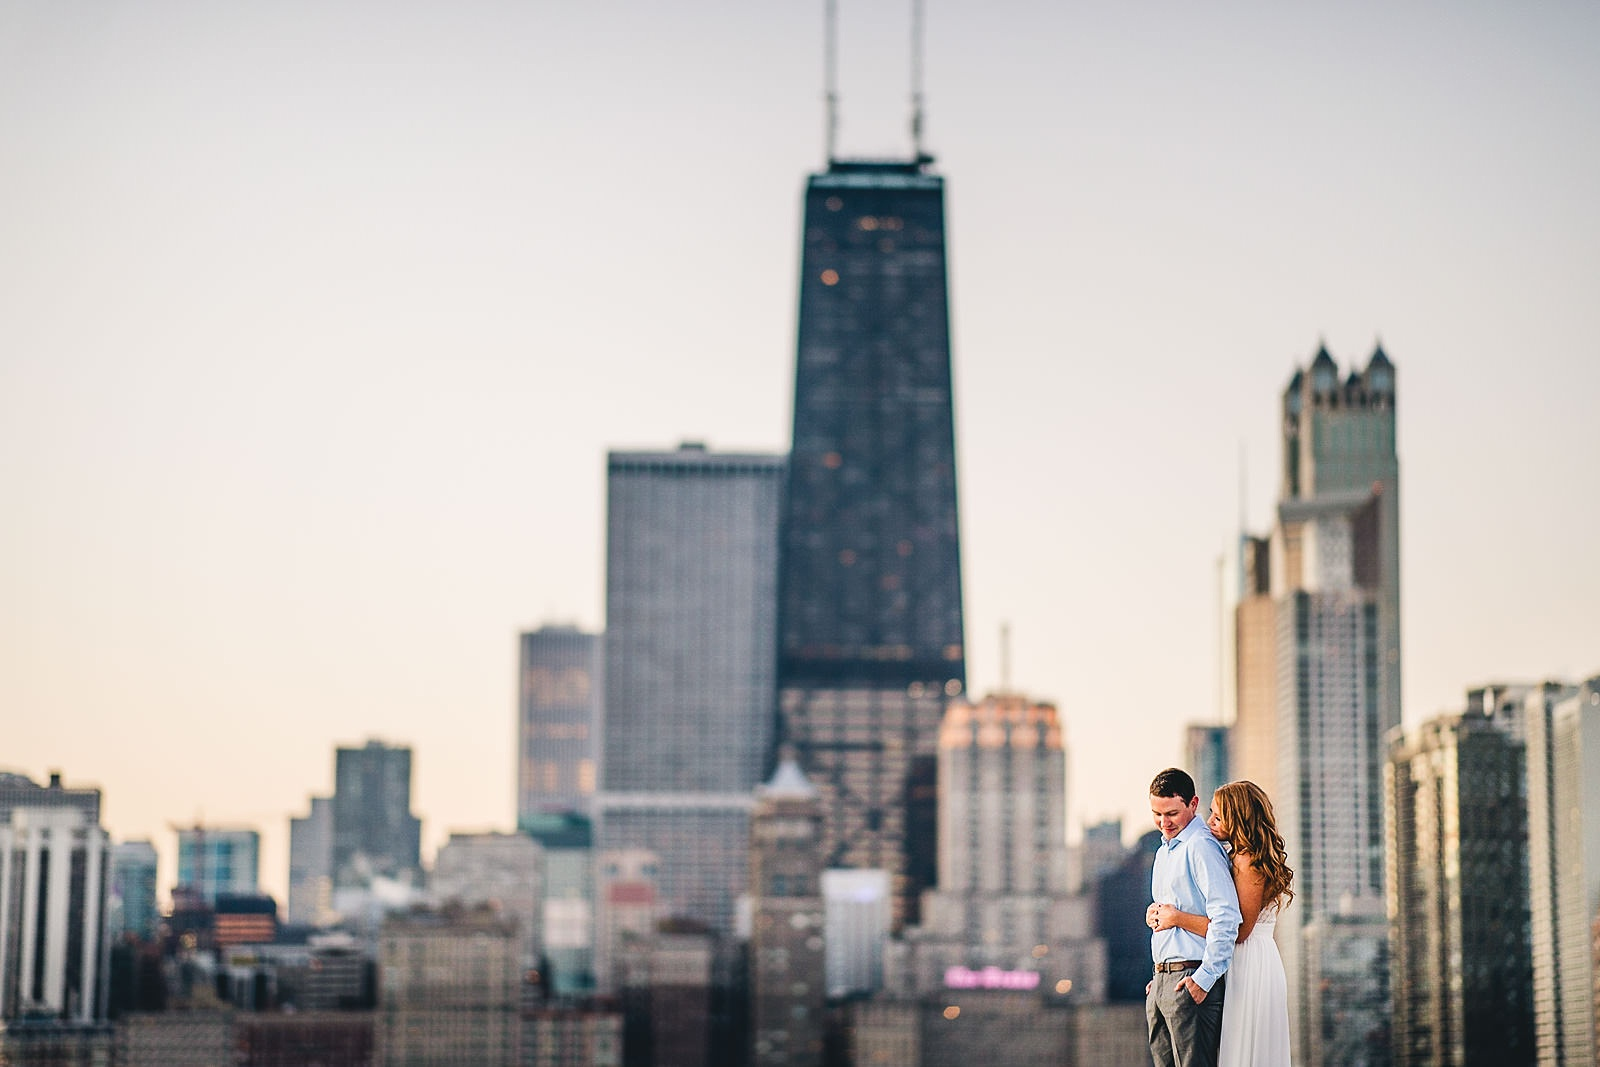 3 chicago engaement photos at sunrise - Rooftop Chicago Engagement Session // Aubyn + Danny